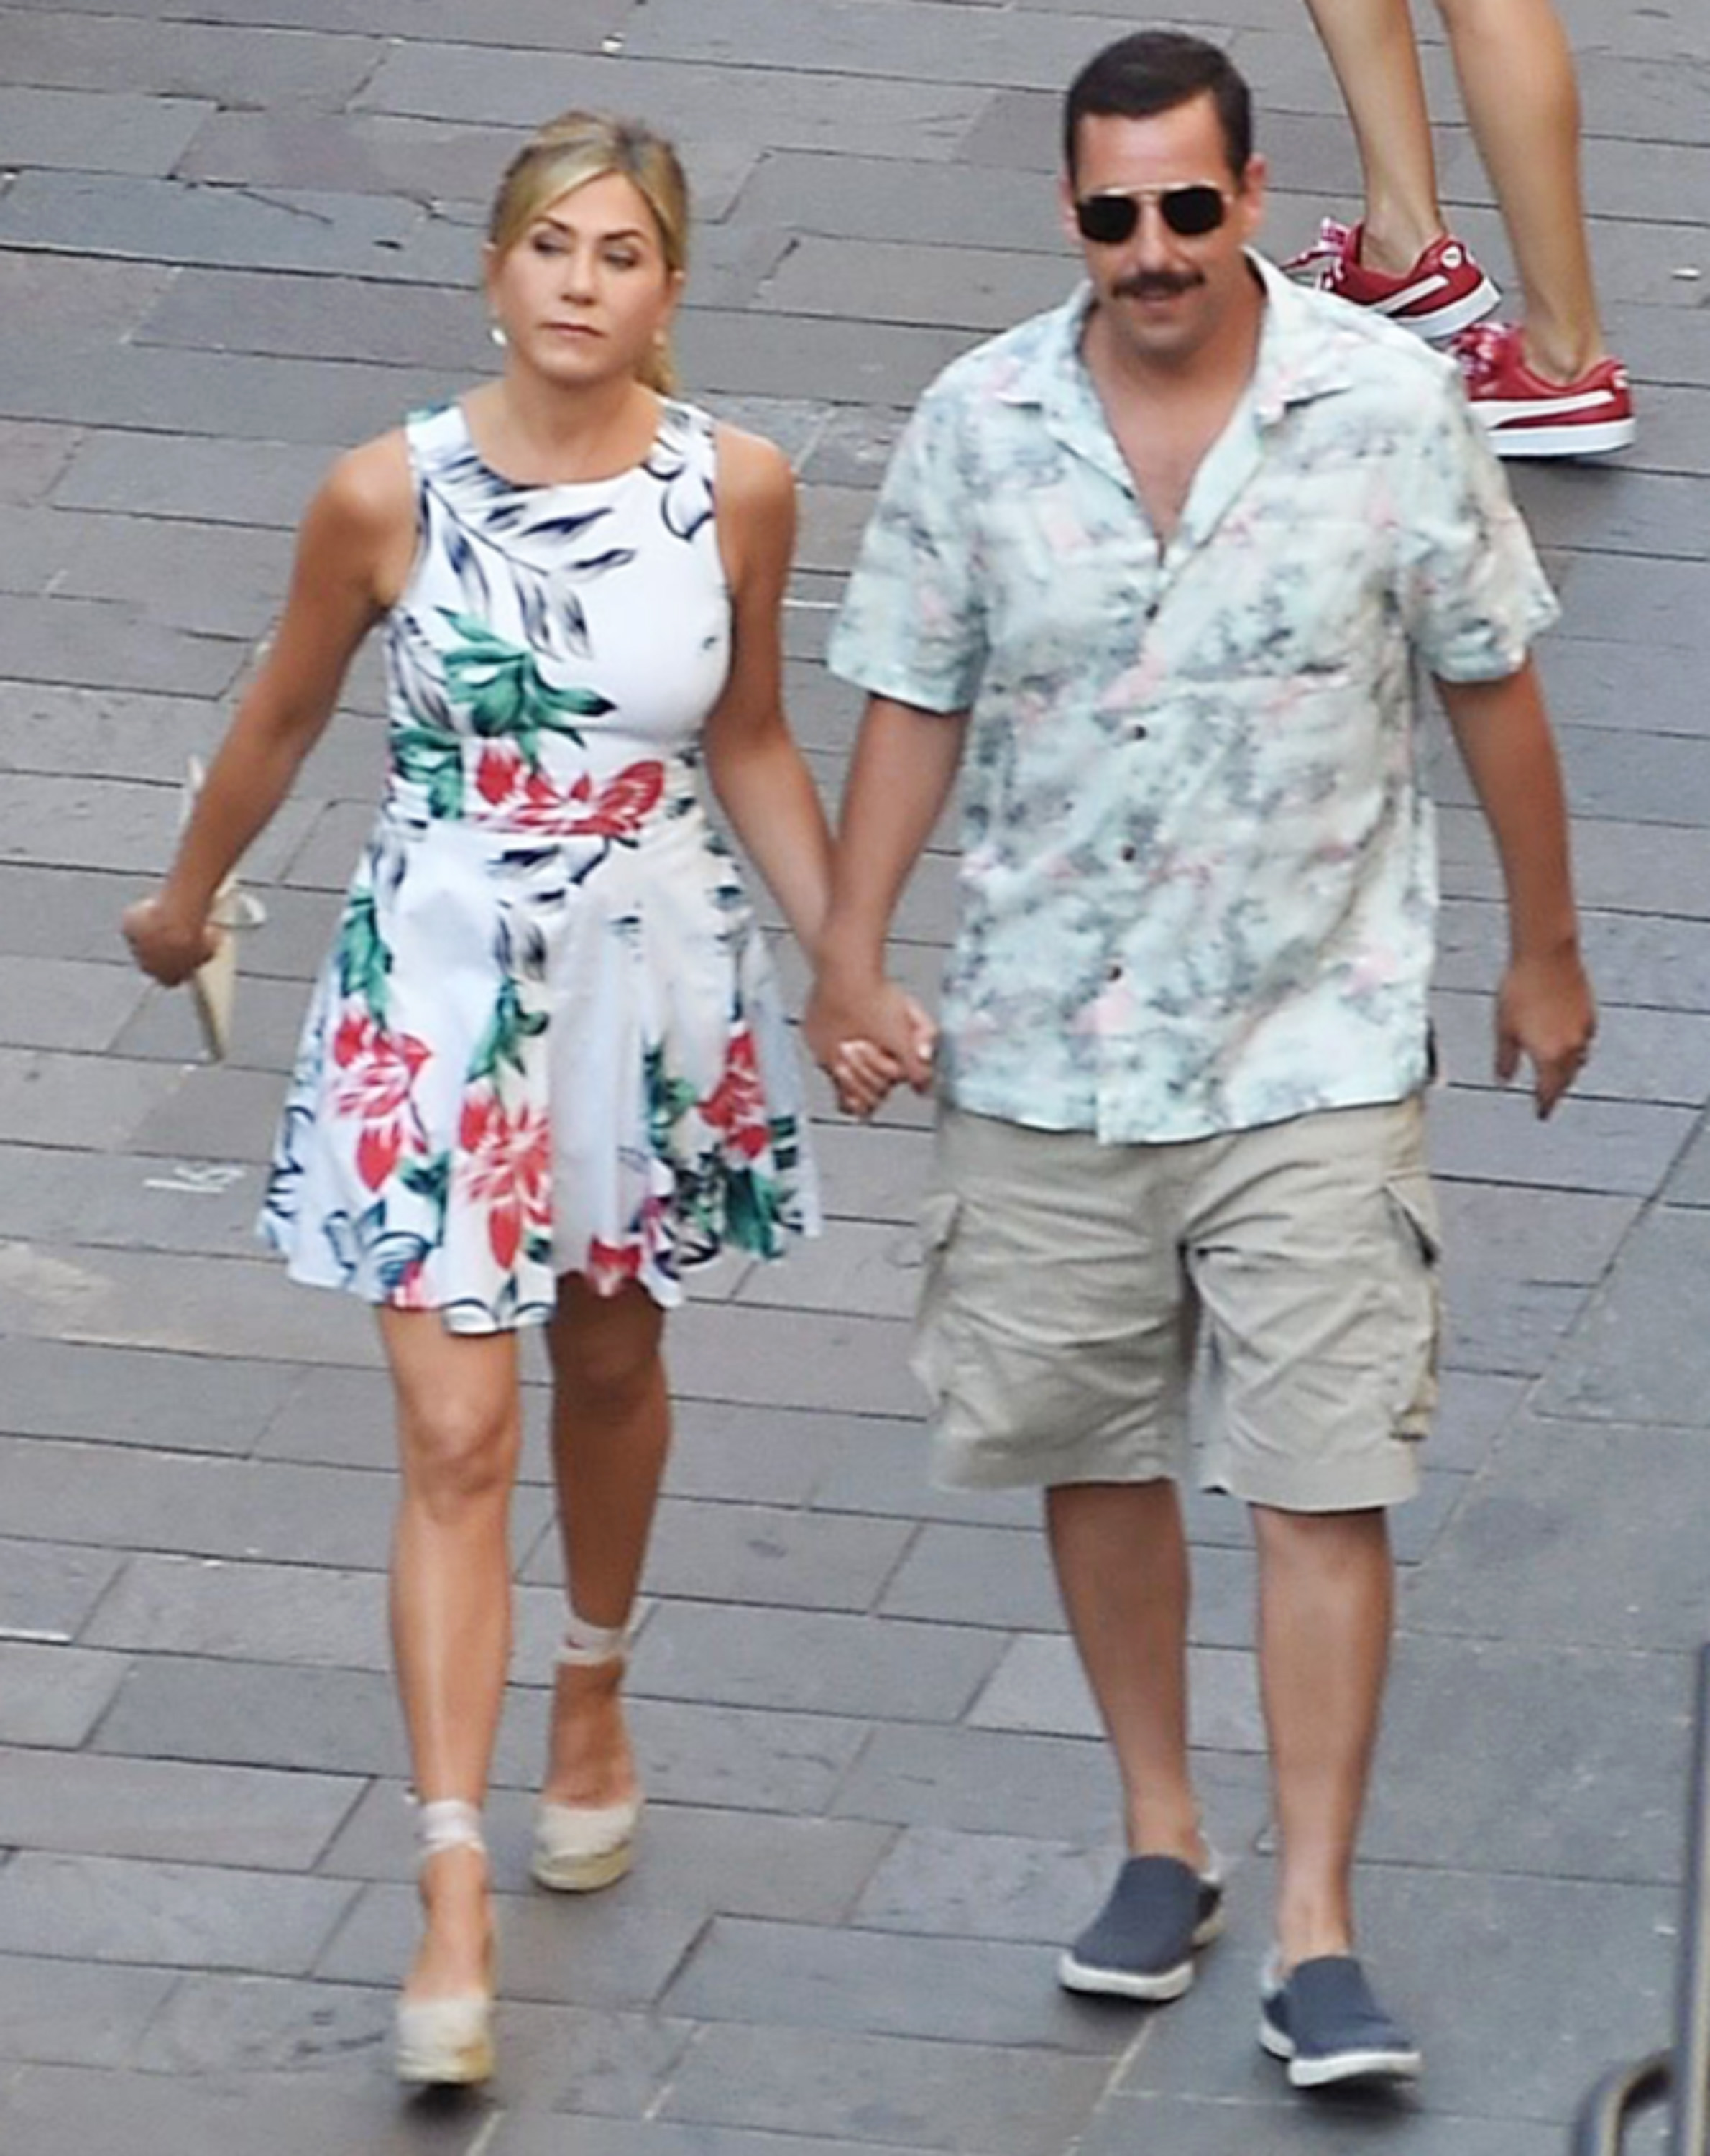 Jennifer Aniston And Adam Sandler Are Seen Filming Scenes For Their New Film In Milan